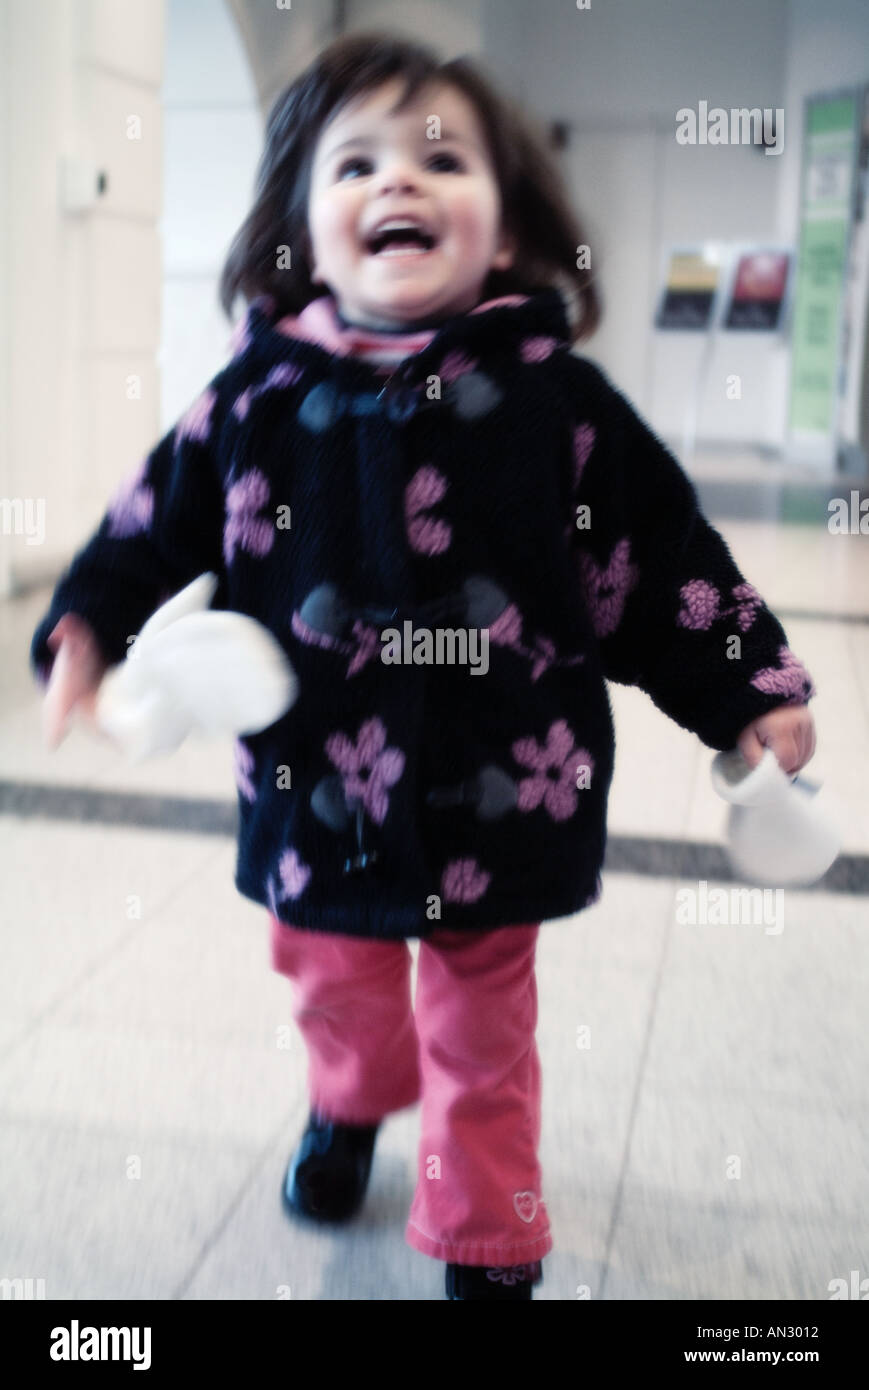 running child in a shopping mall London england - Stock Image